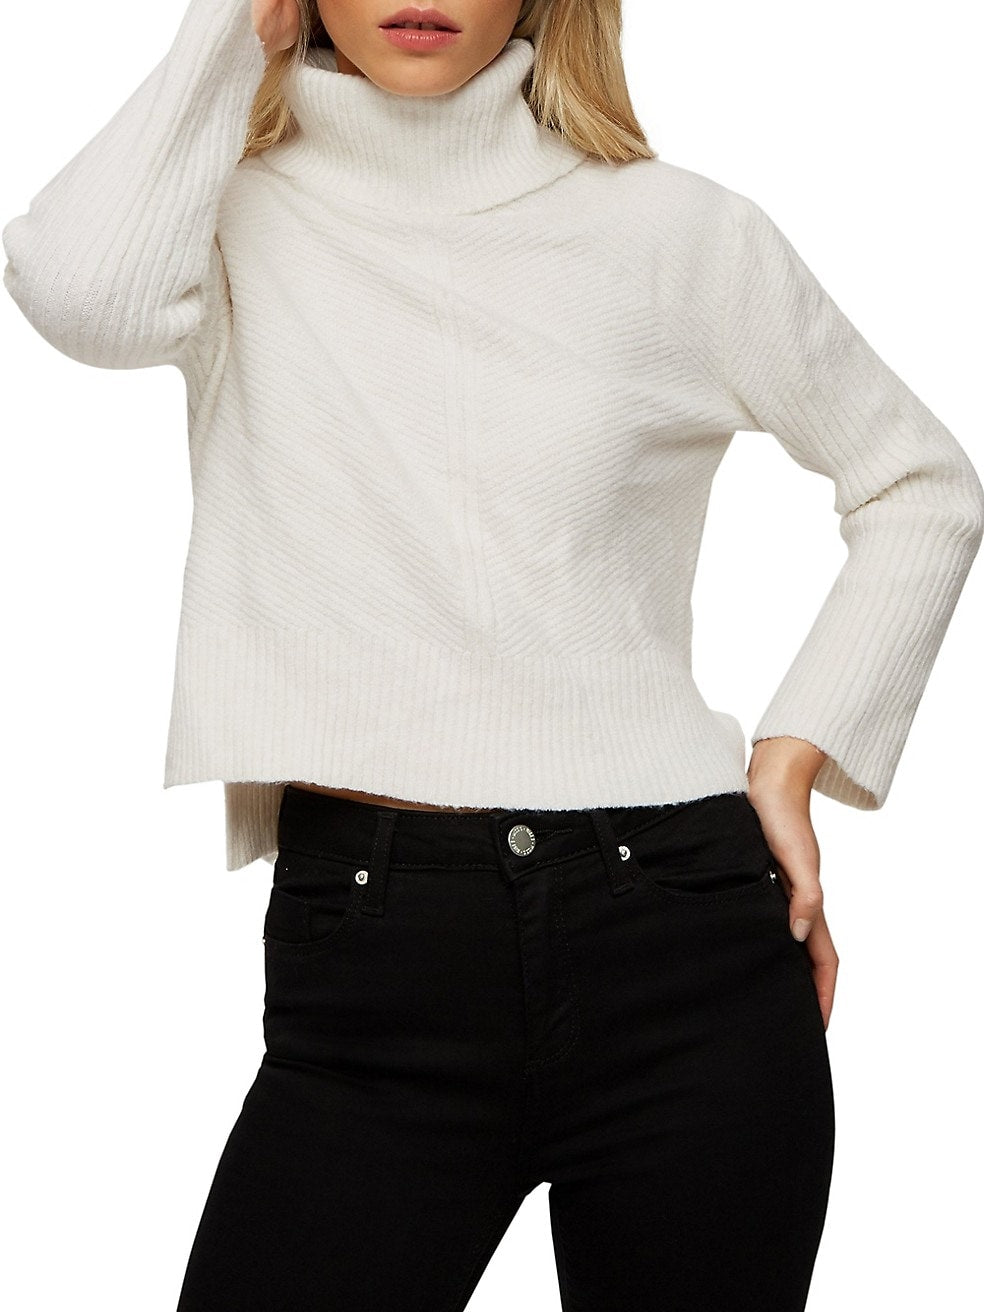 Funnelneck Sweater